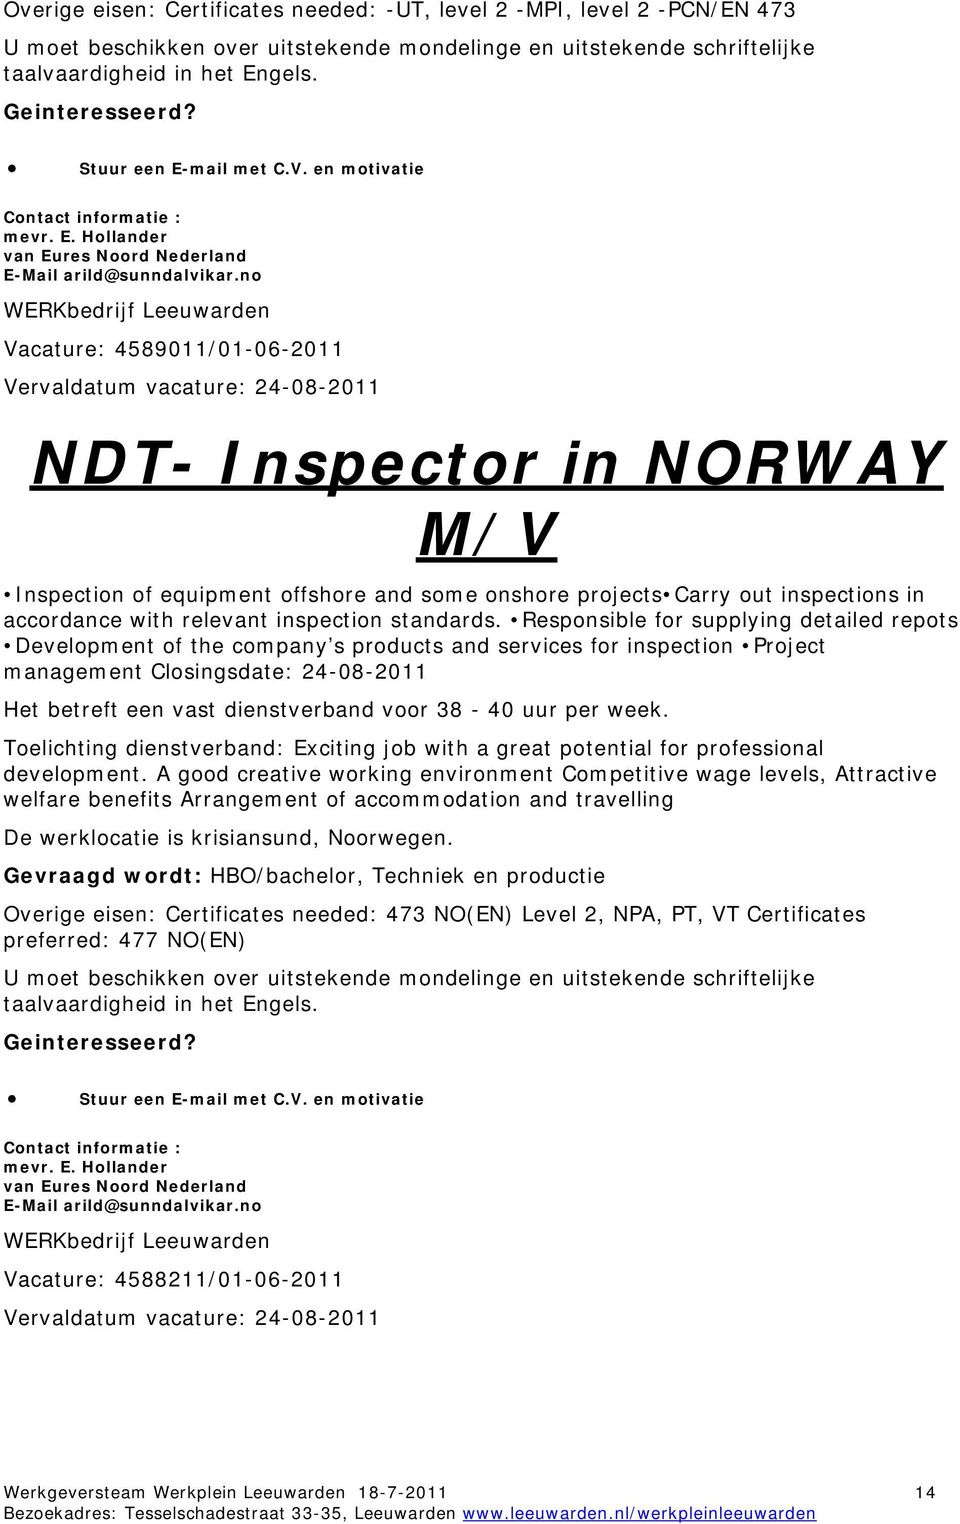 no Vacature: 4589011/01-06-2011 Vervaldatum vacature: 24-08-2011 NDT- Inspector in NORWAY M/V Inspection of equipment offshore and some onshore projects Carry out inspections in accordance with